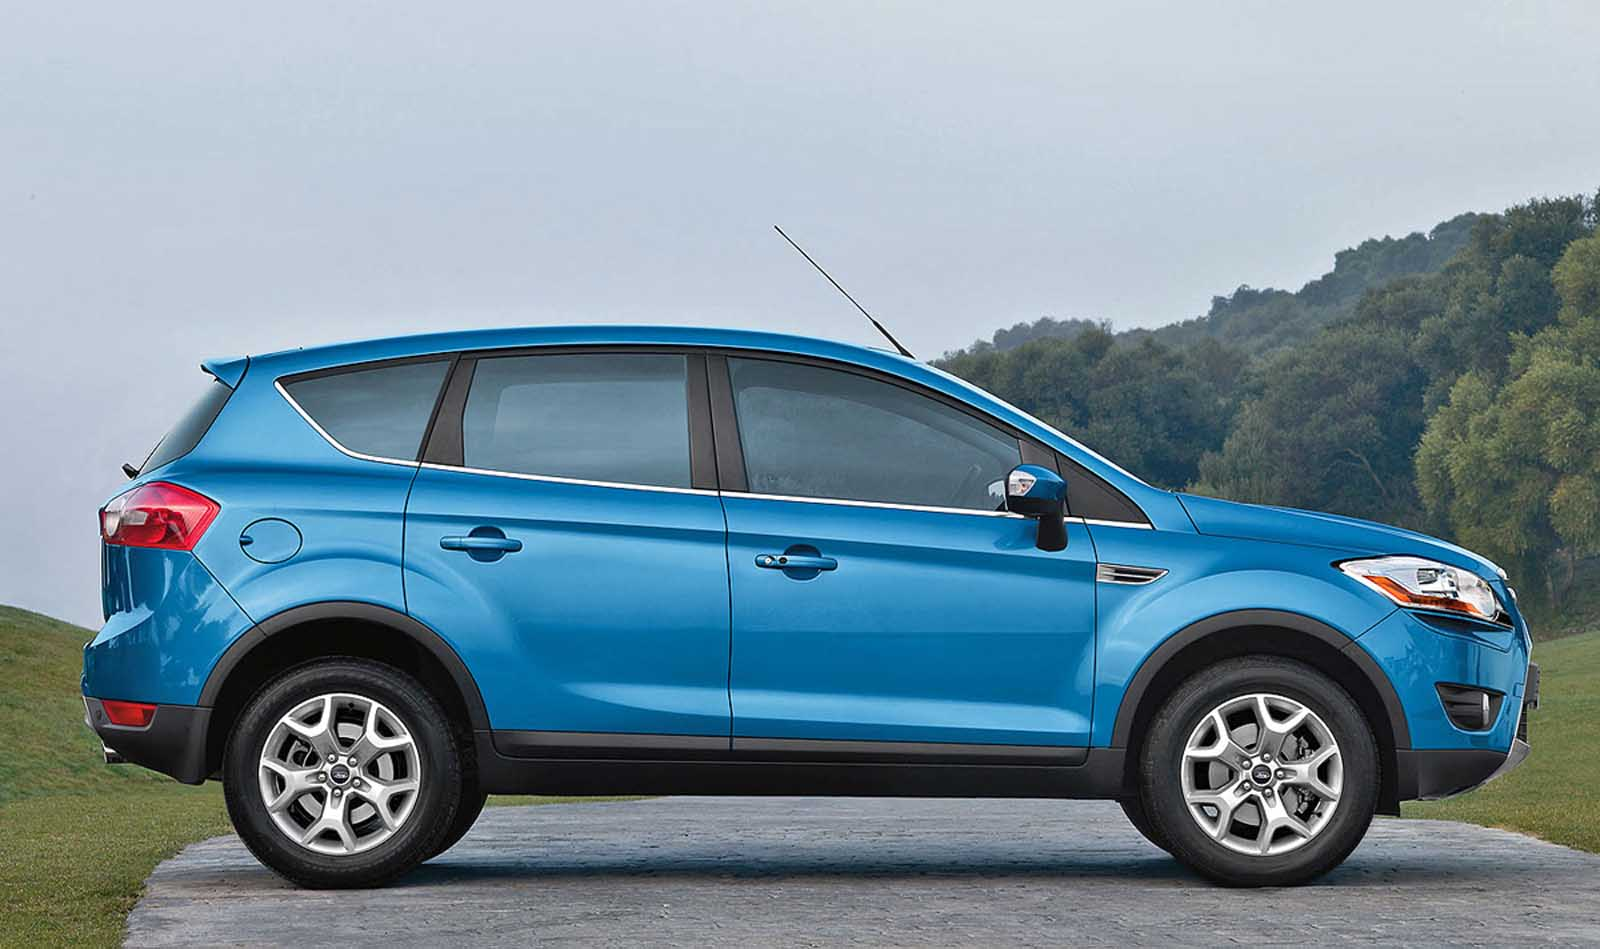 Exterieur_Ford-Kuga_2